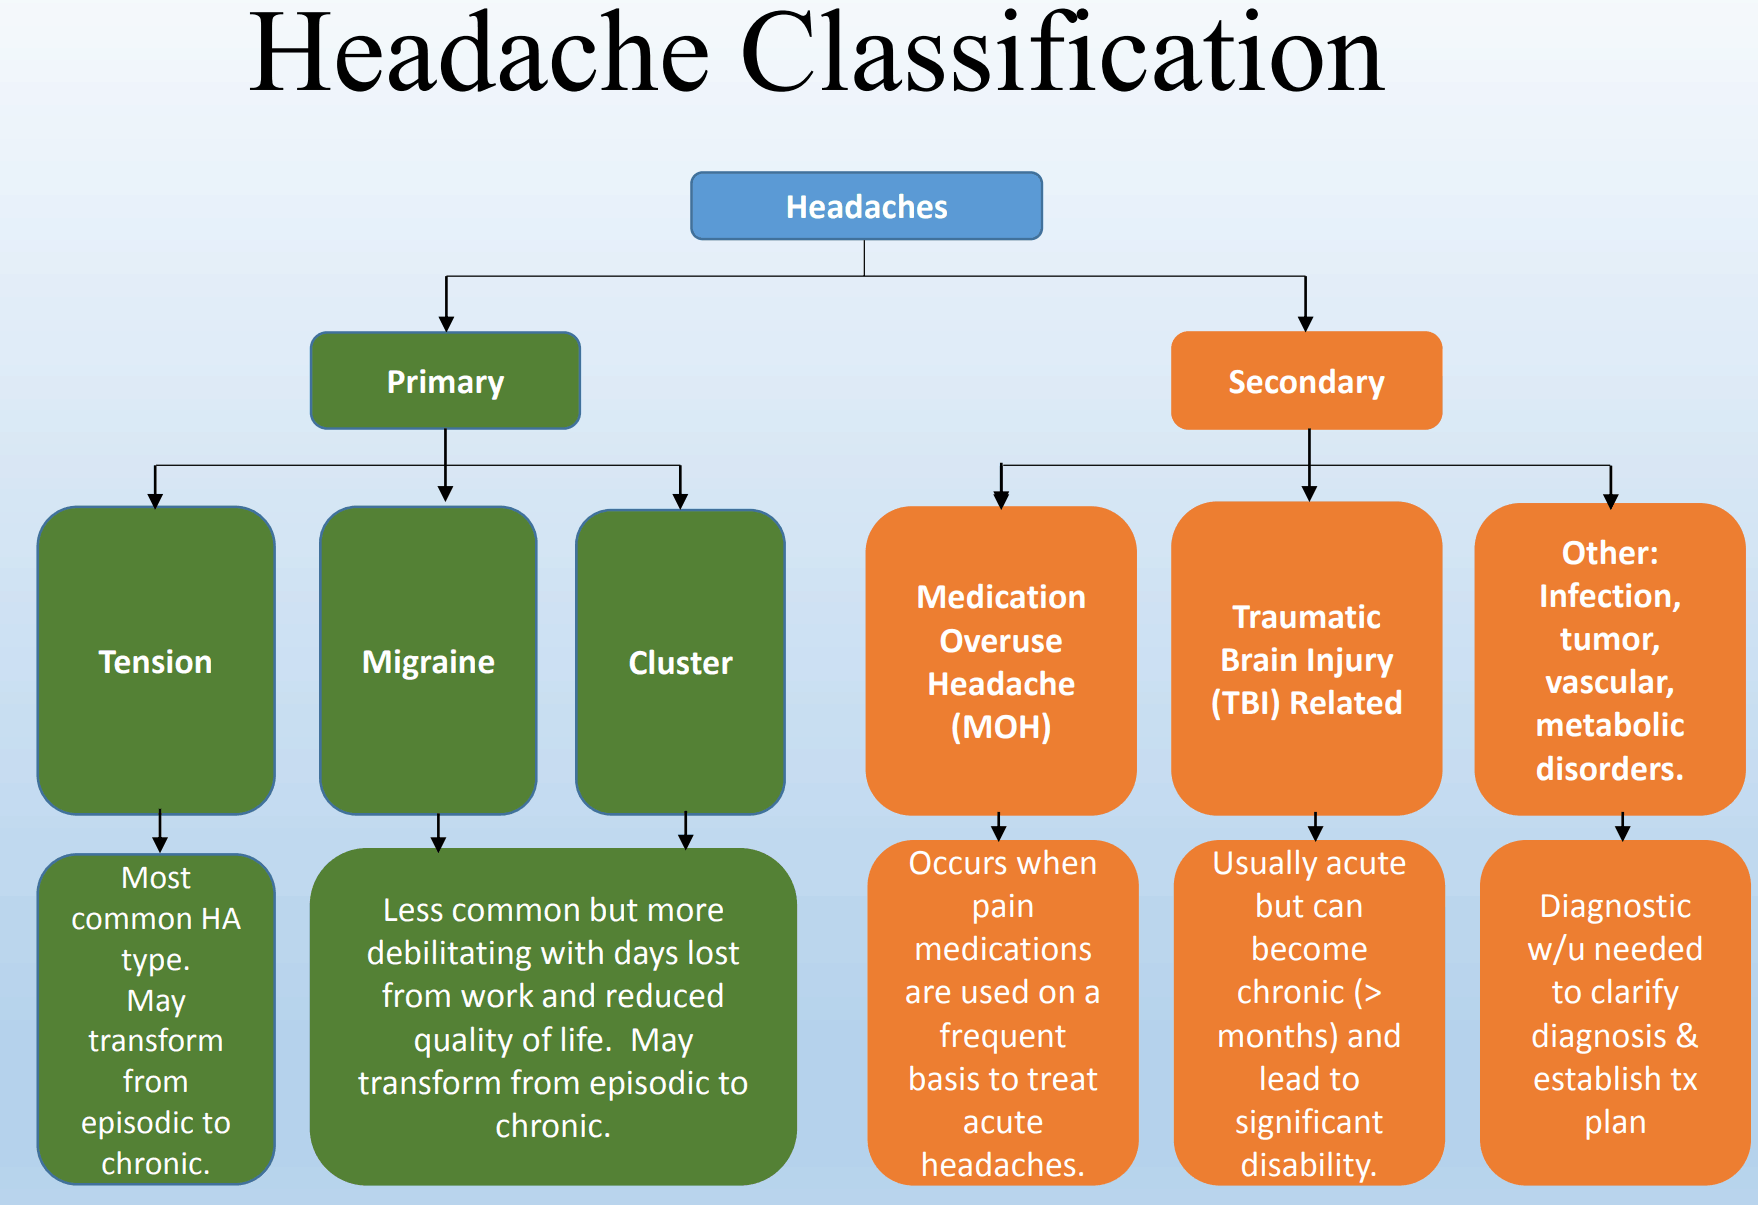 Headaches Classification Guide